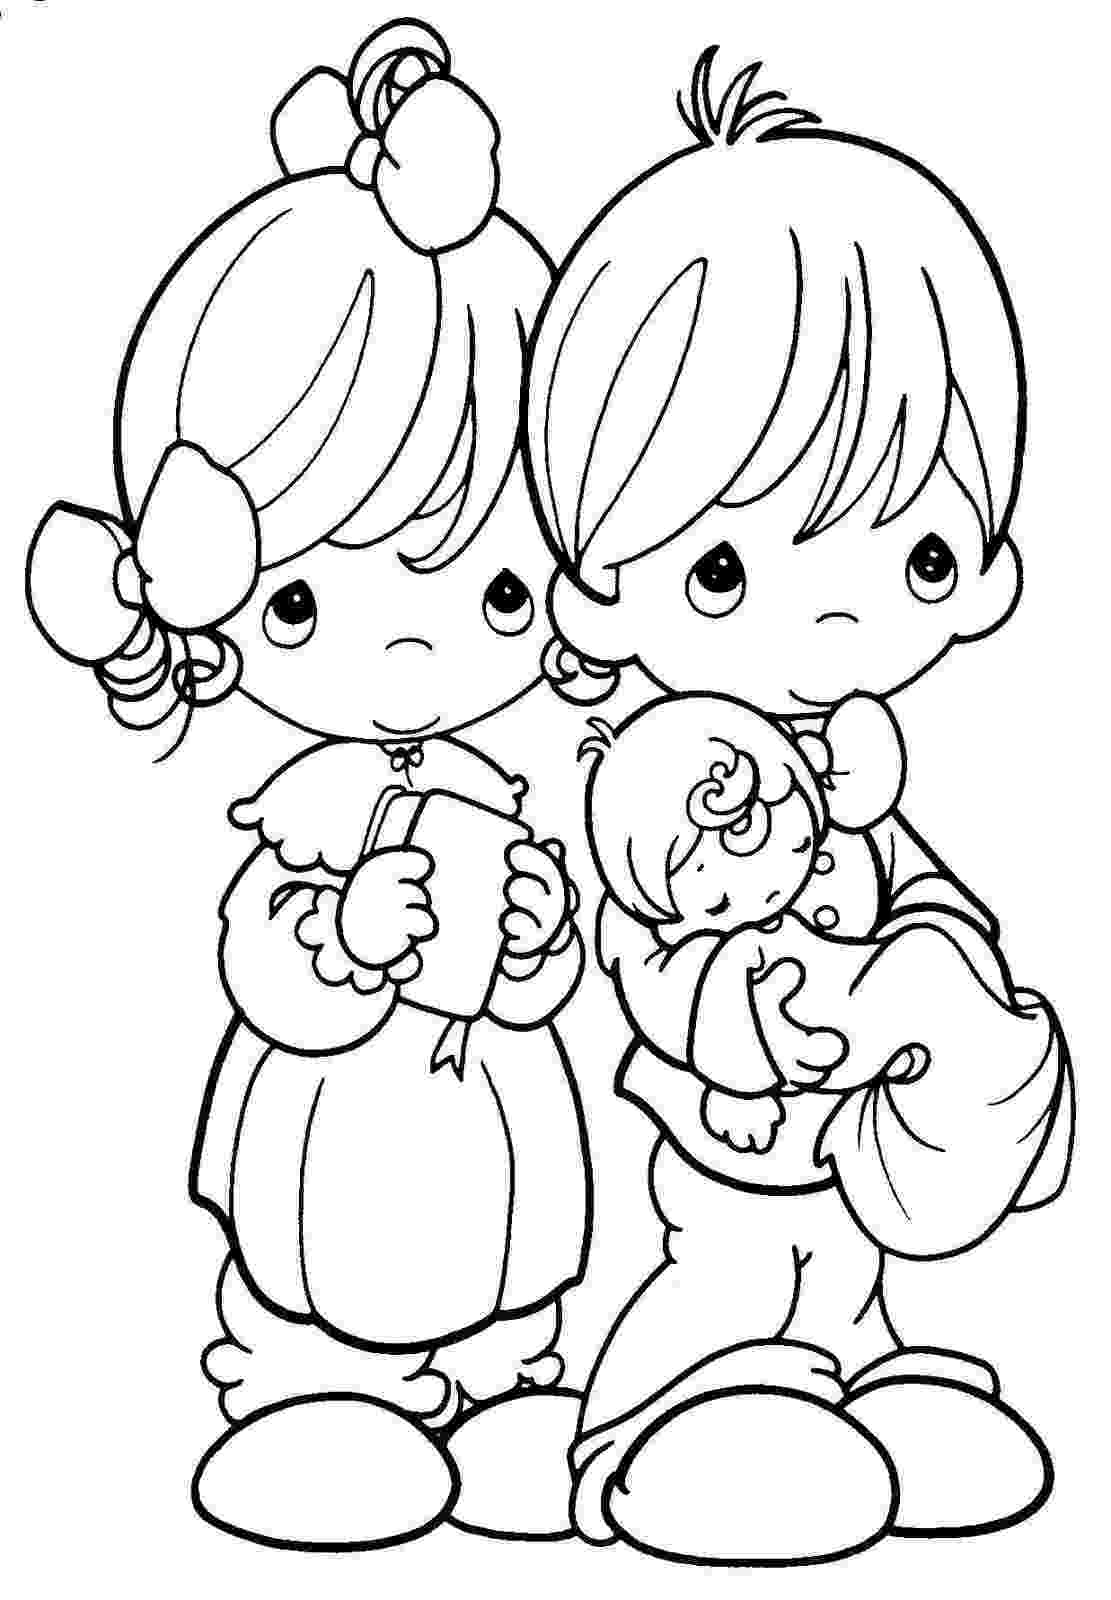 precious moments printable coloring pages precious moments coloring pages learn to coloring precious moments printable coloring pages